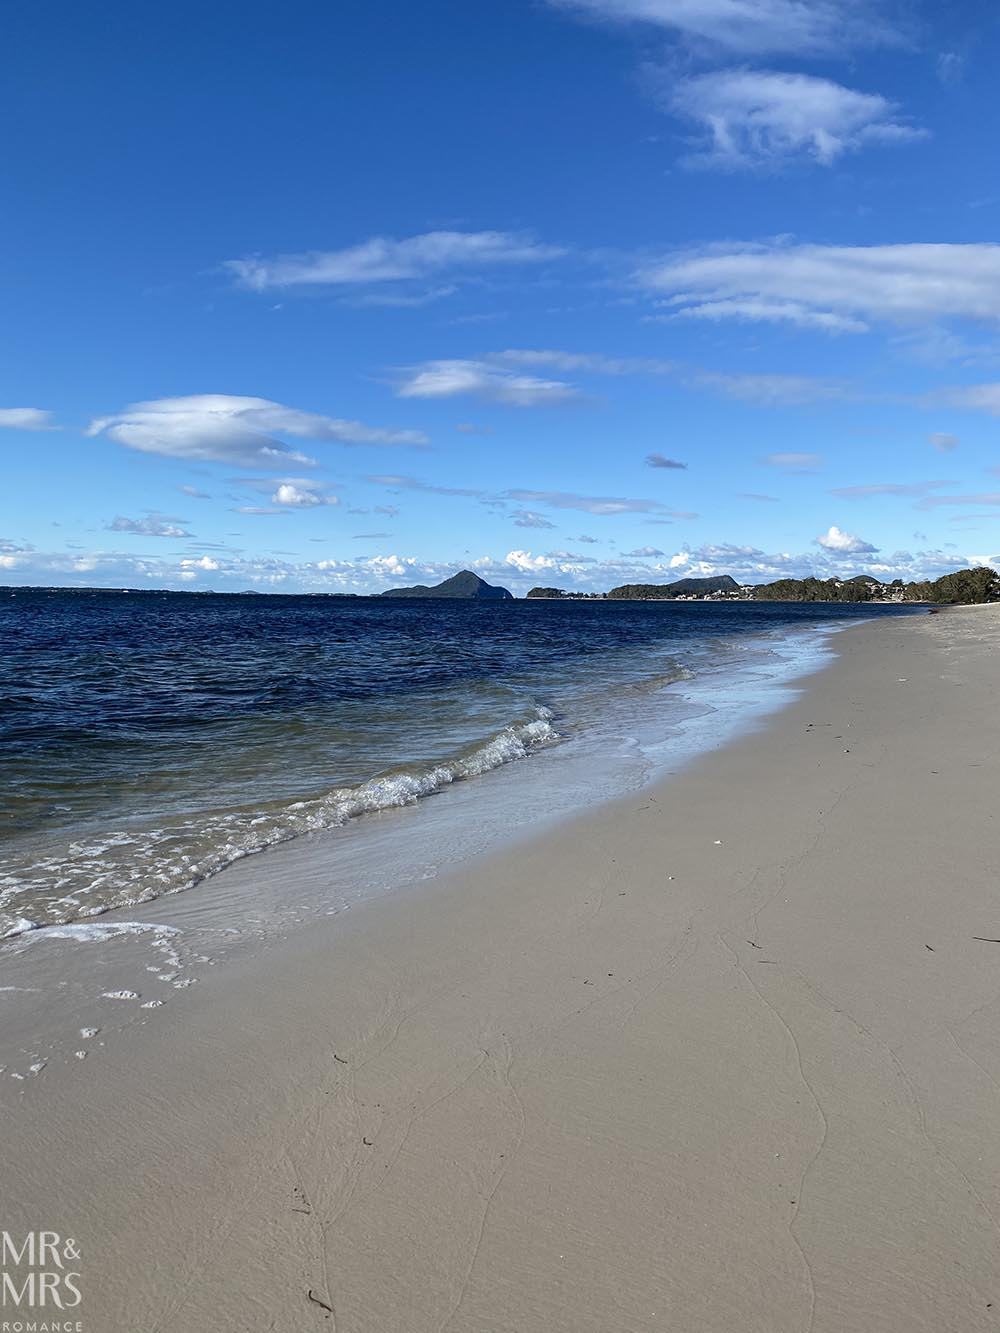 Bagnallls Beach, Port Stephens NSW